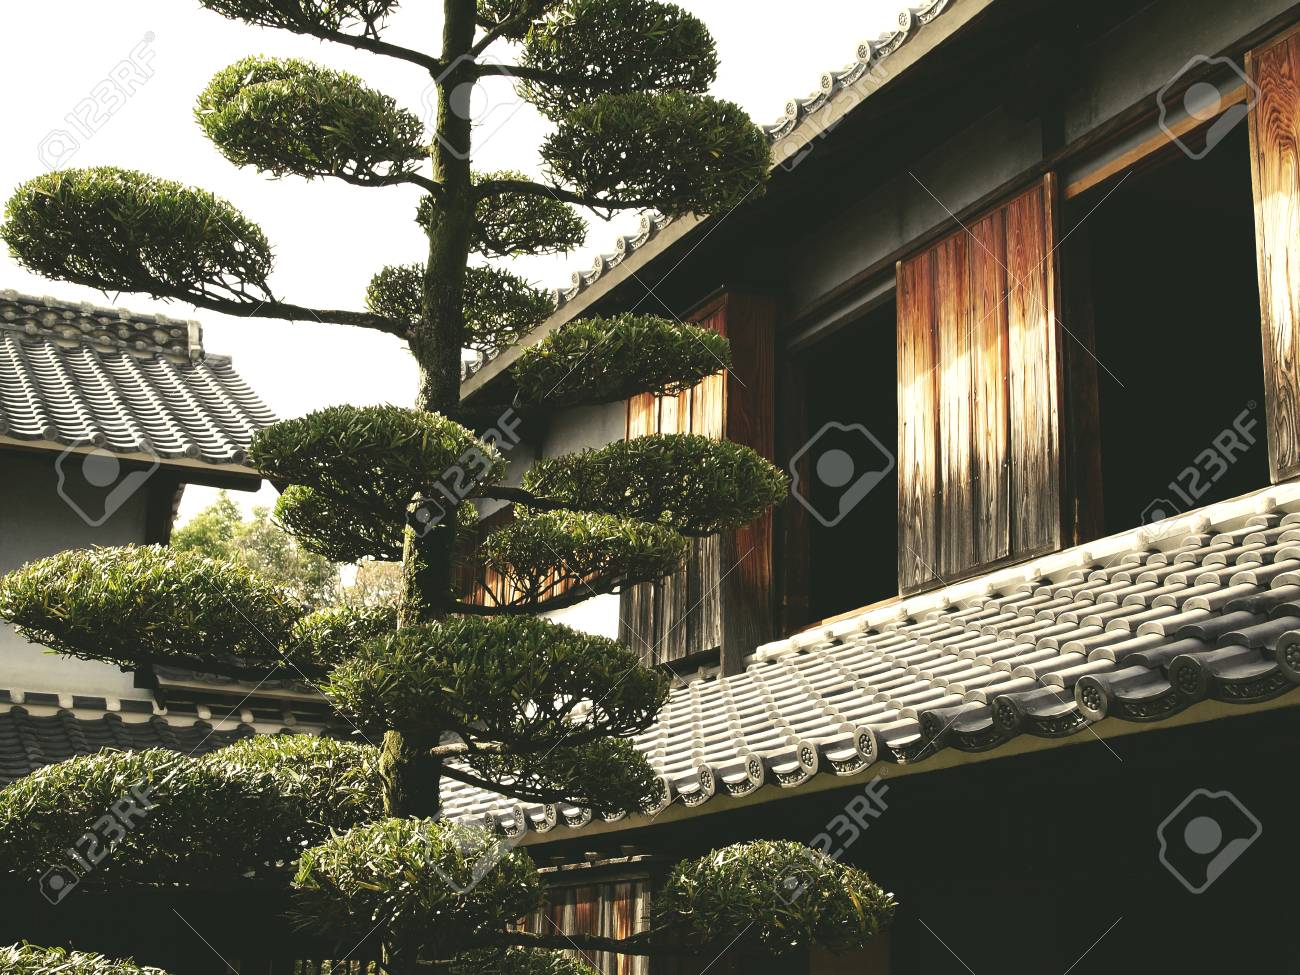 old japanese housing in